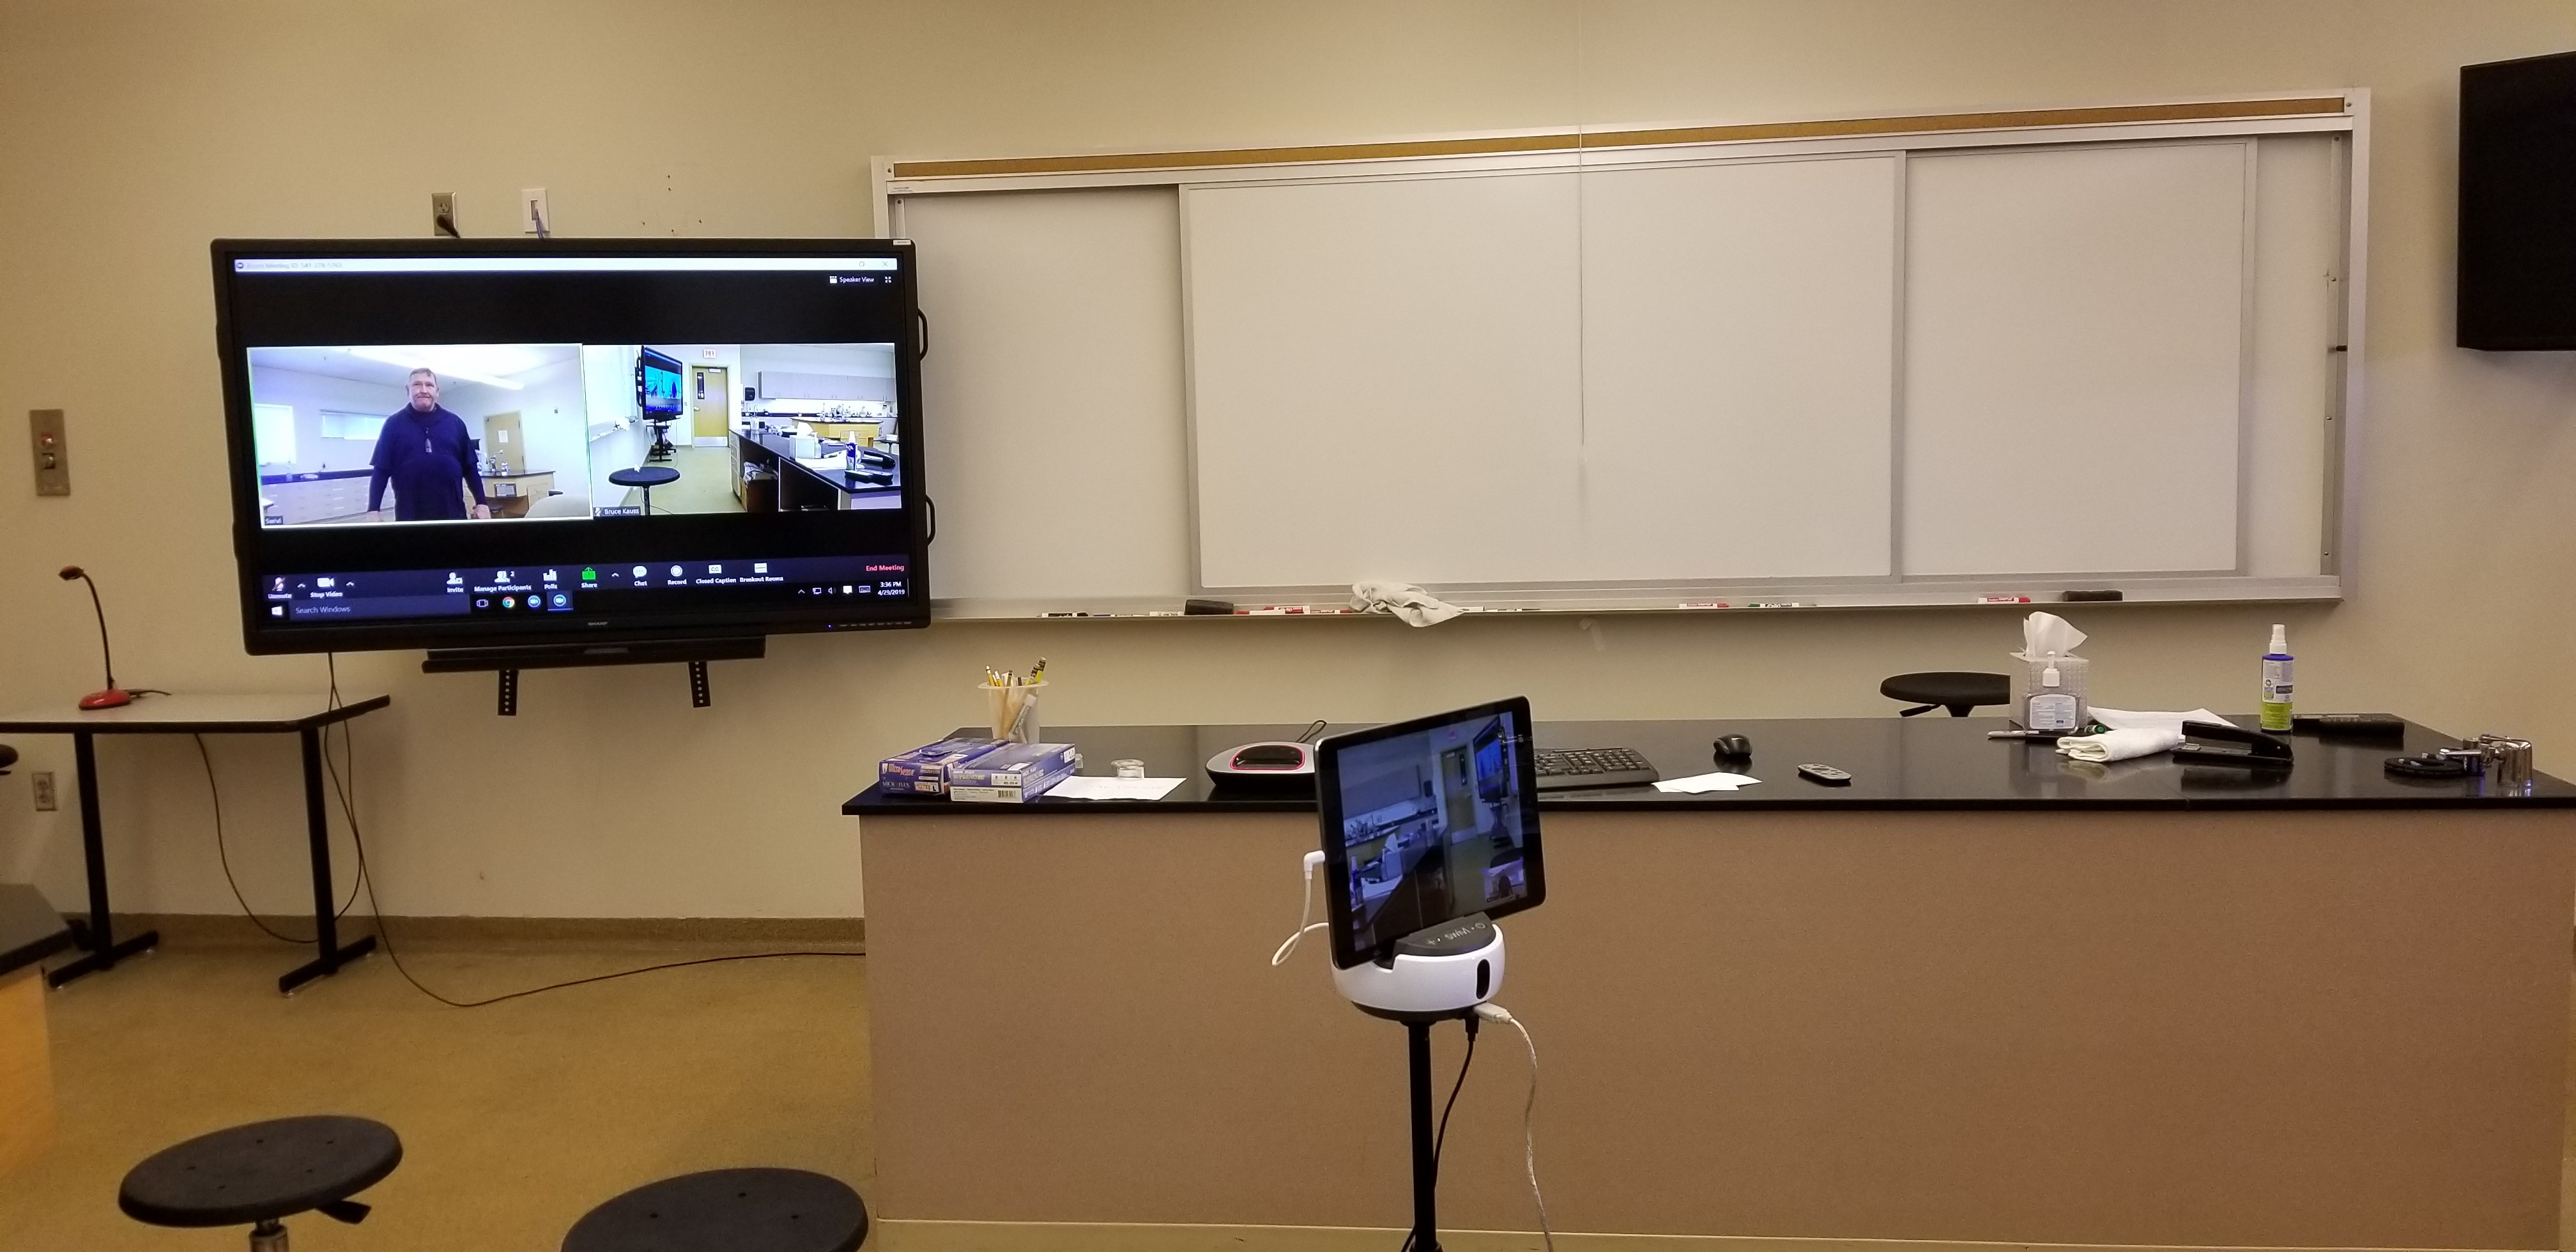 Biology classroom lab showing the Swivl with iPad and classroom display in the background.